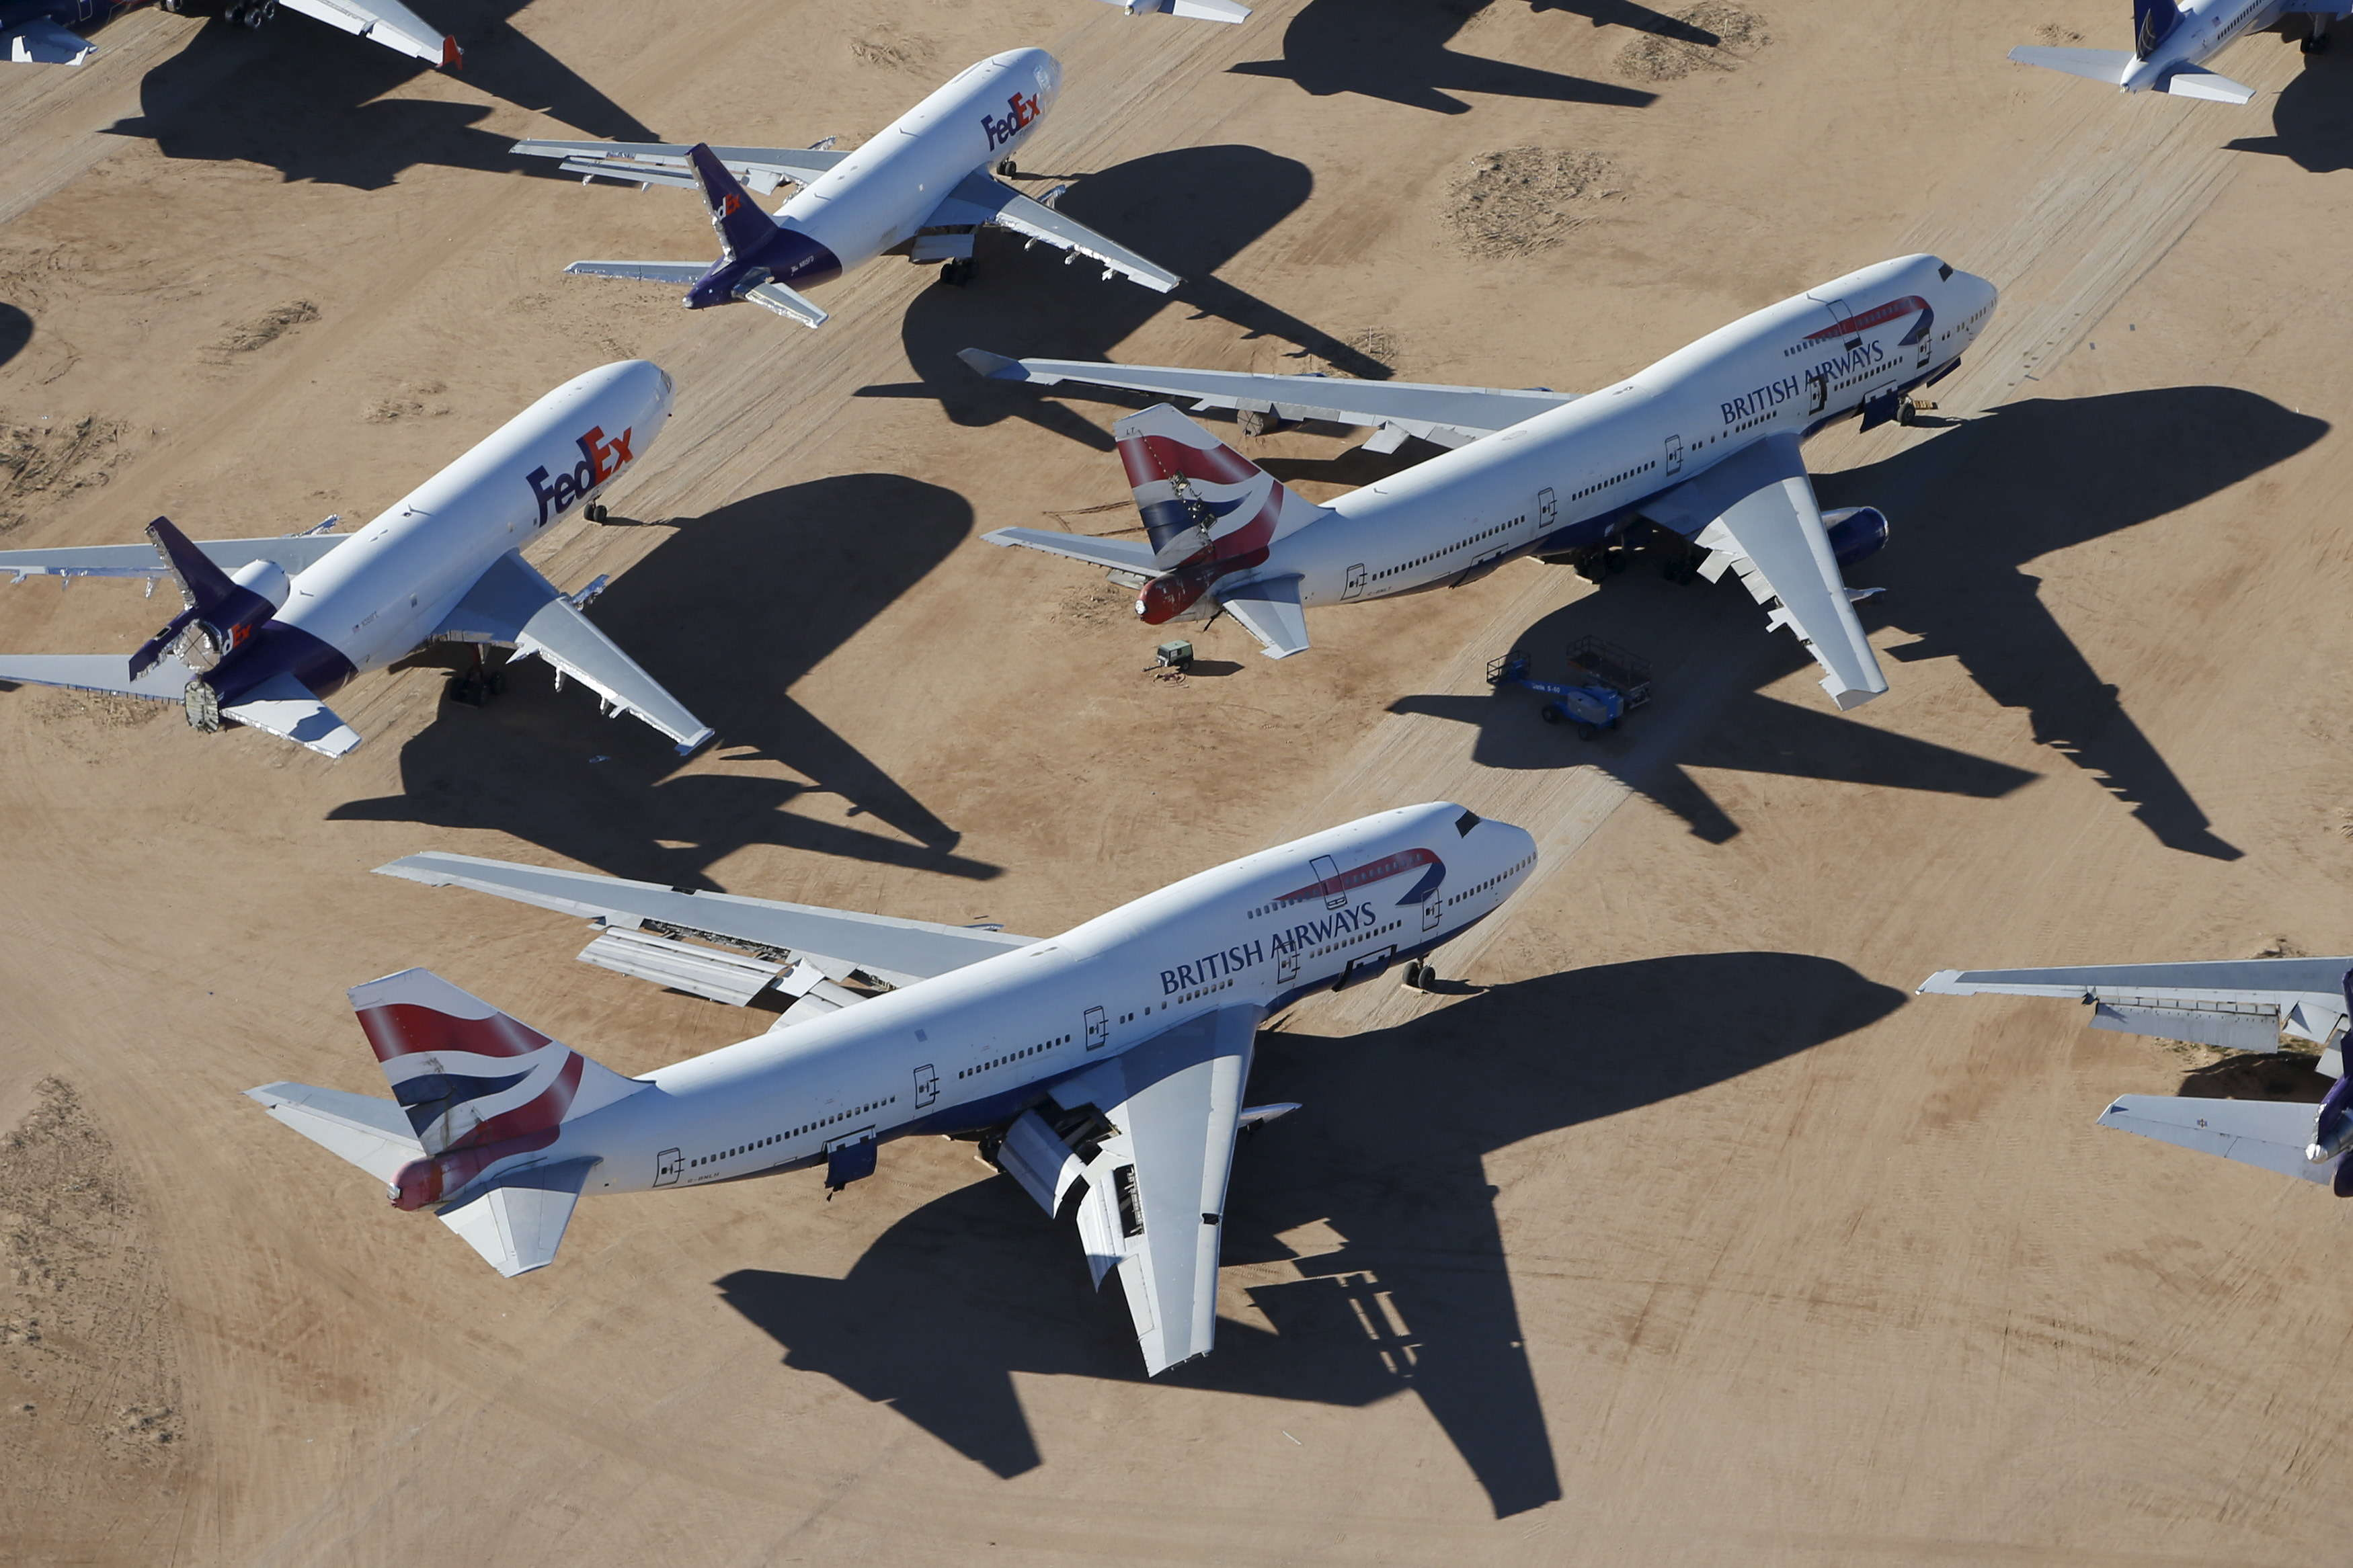 As of March 2015, British Airways has quite a few 747s at the bone yard.